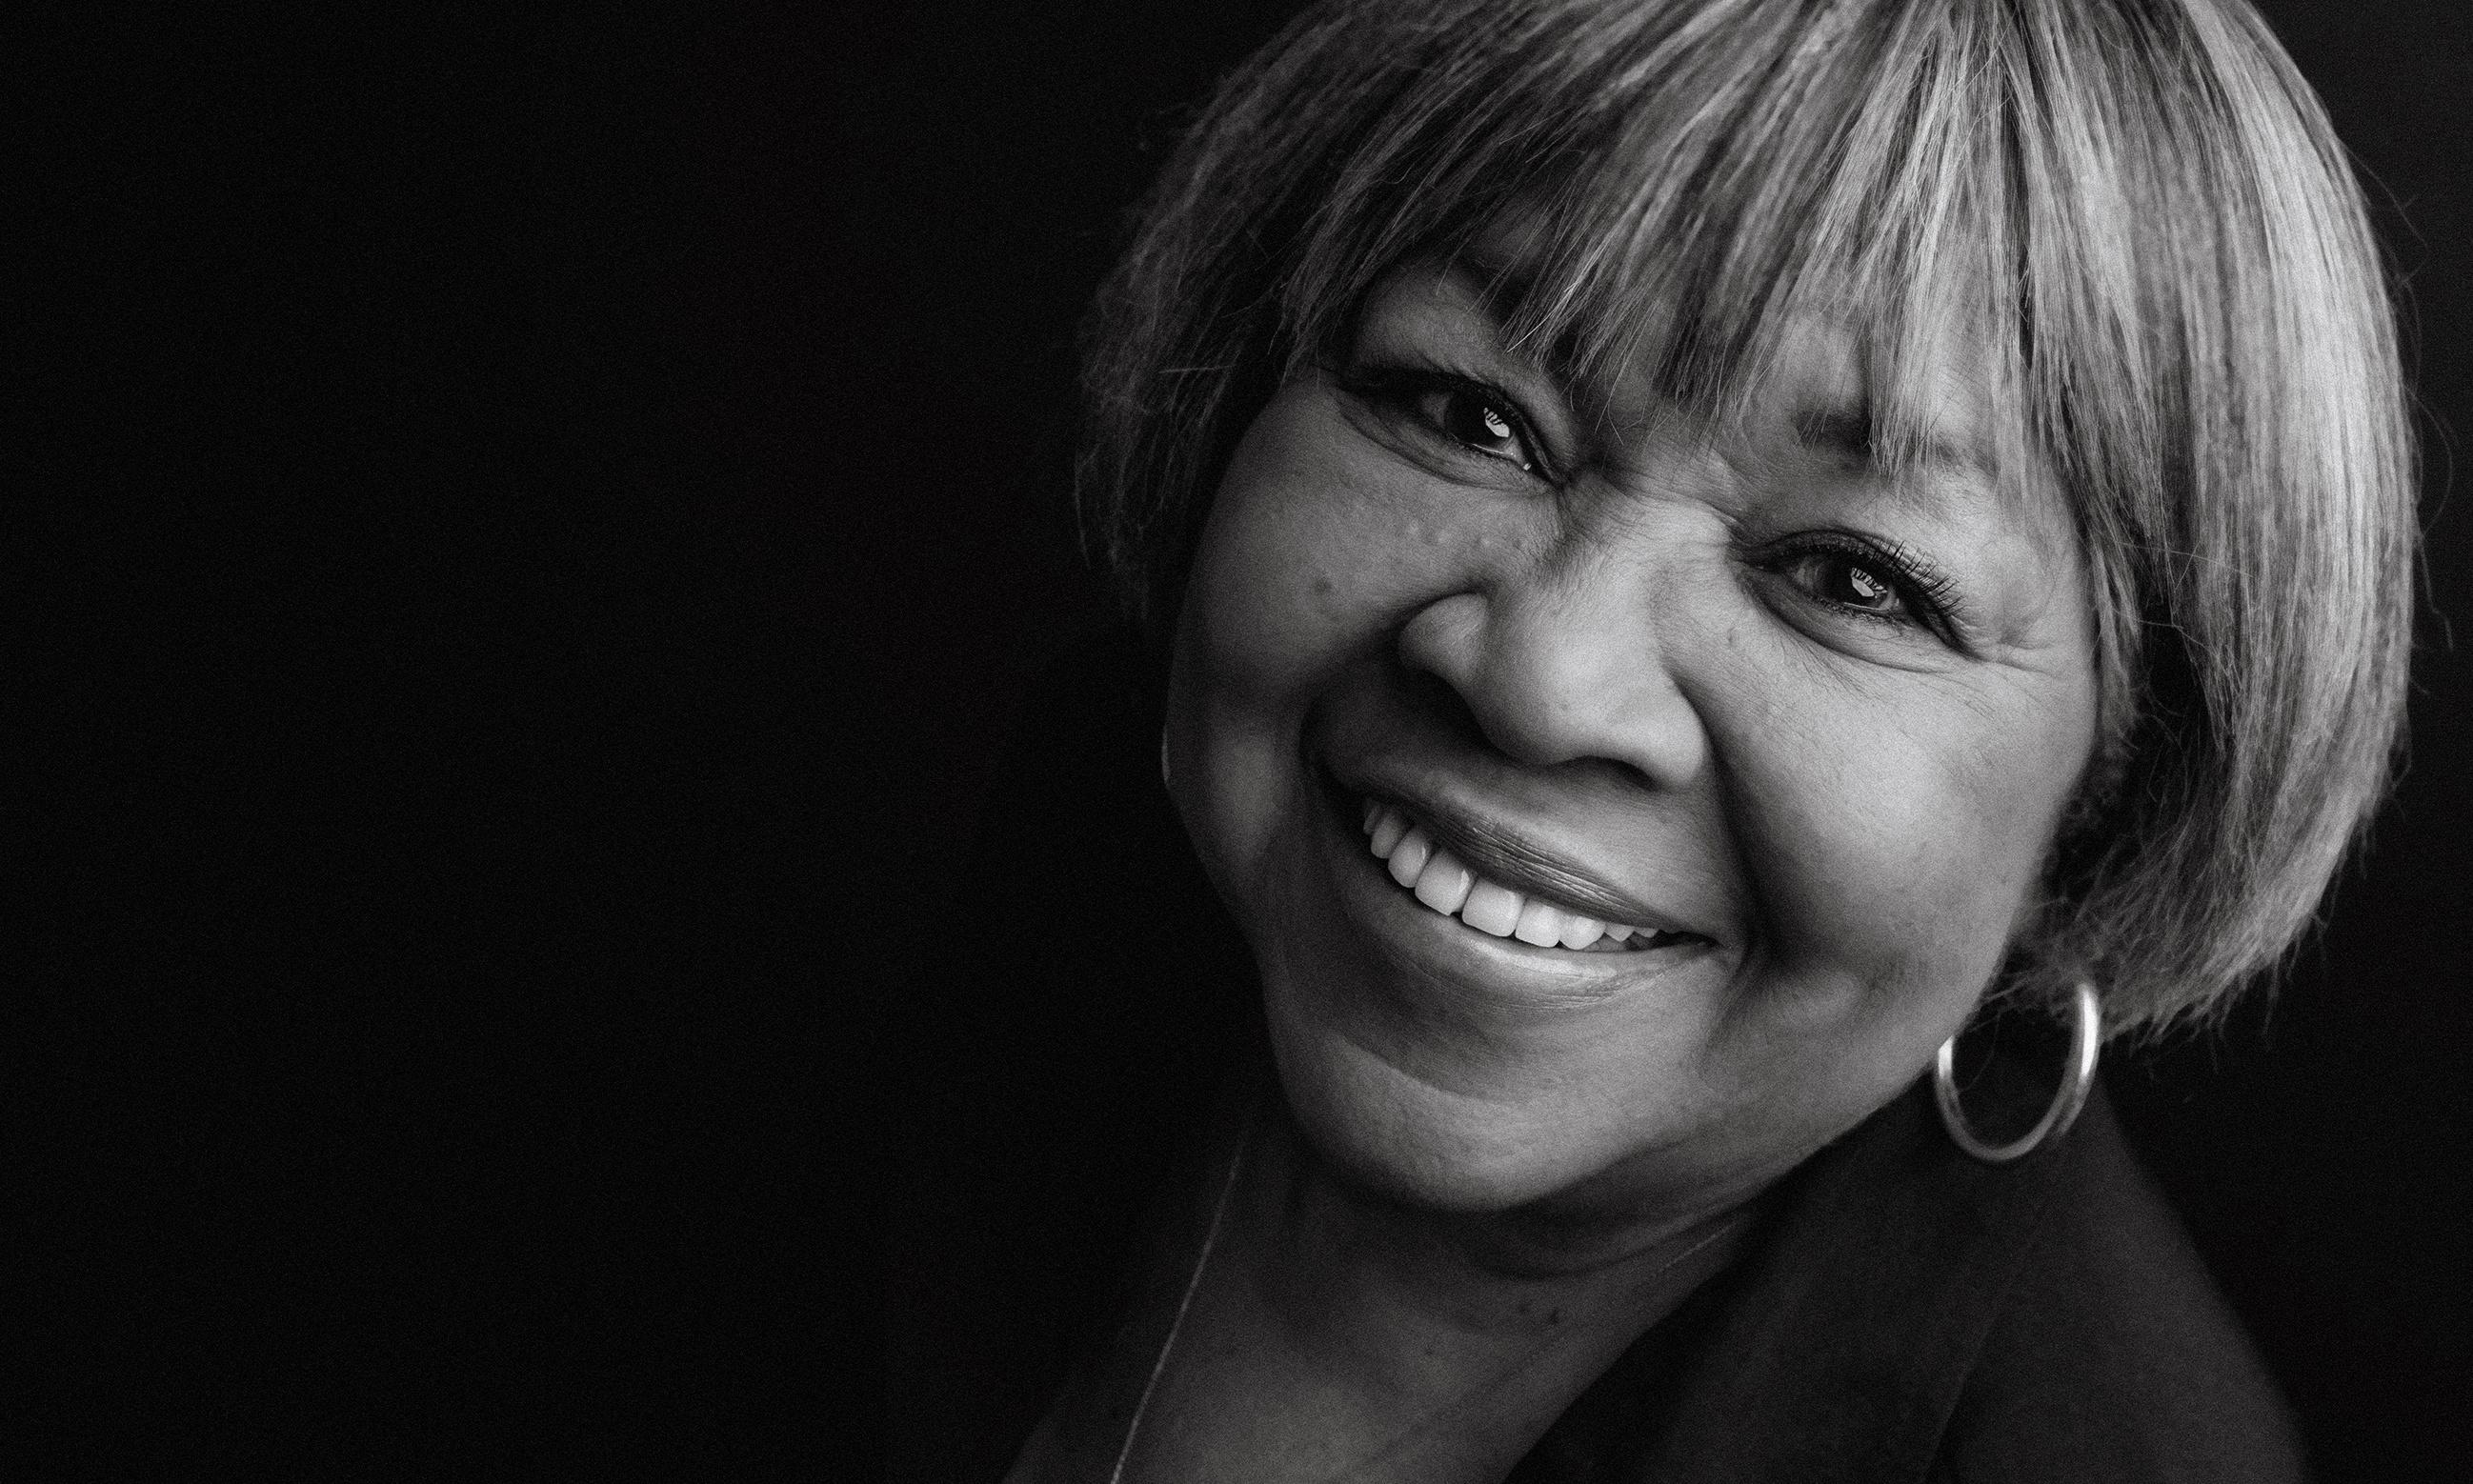 Mavis Staples: We Get By review – fearsome, eclectic, and on fine form